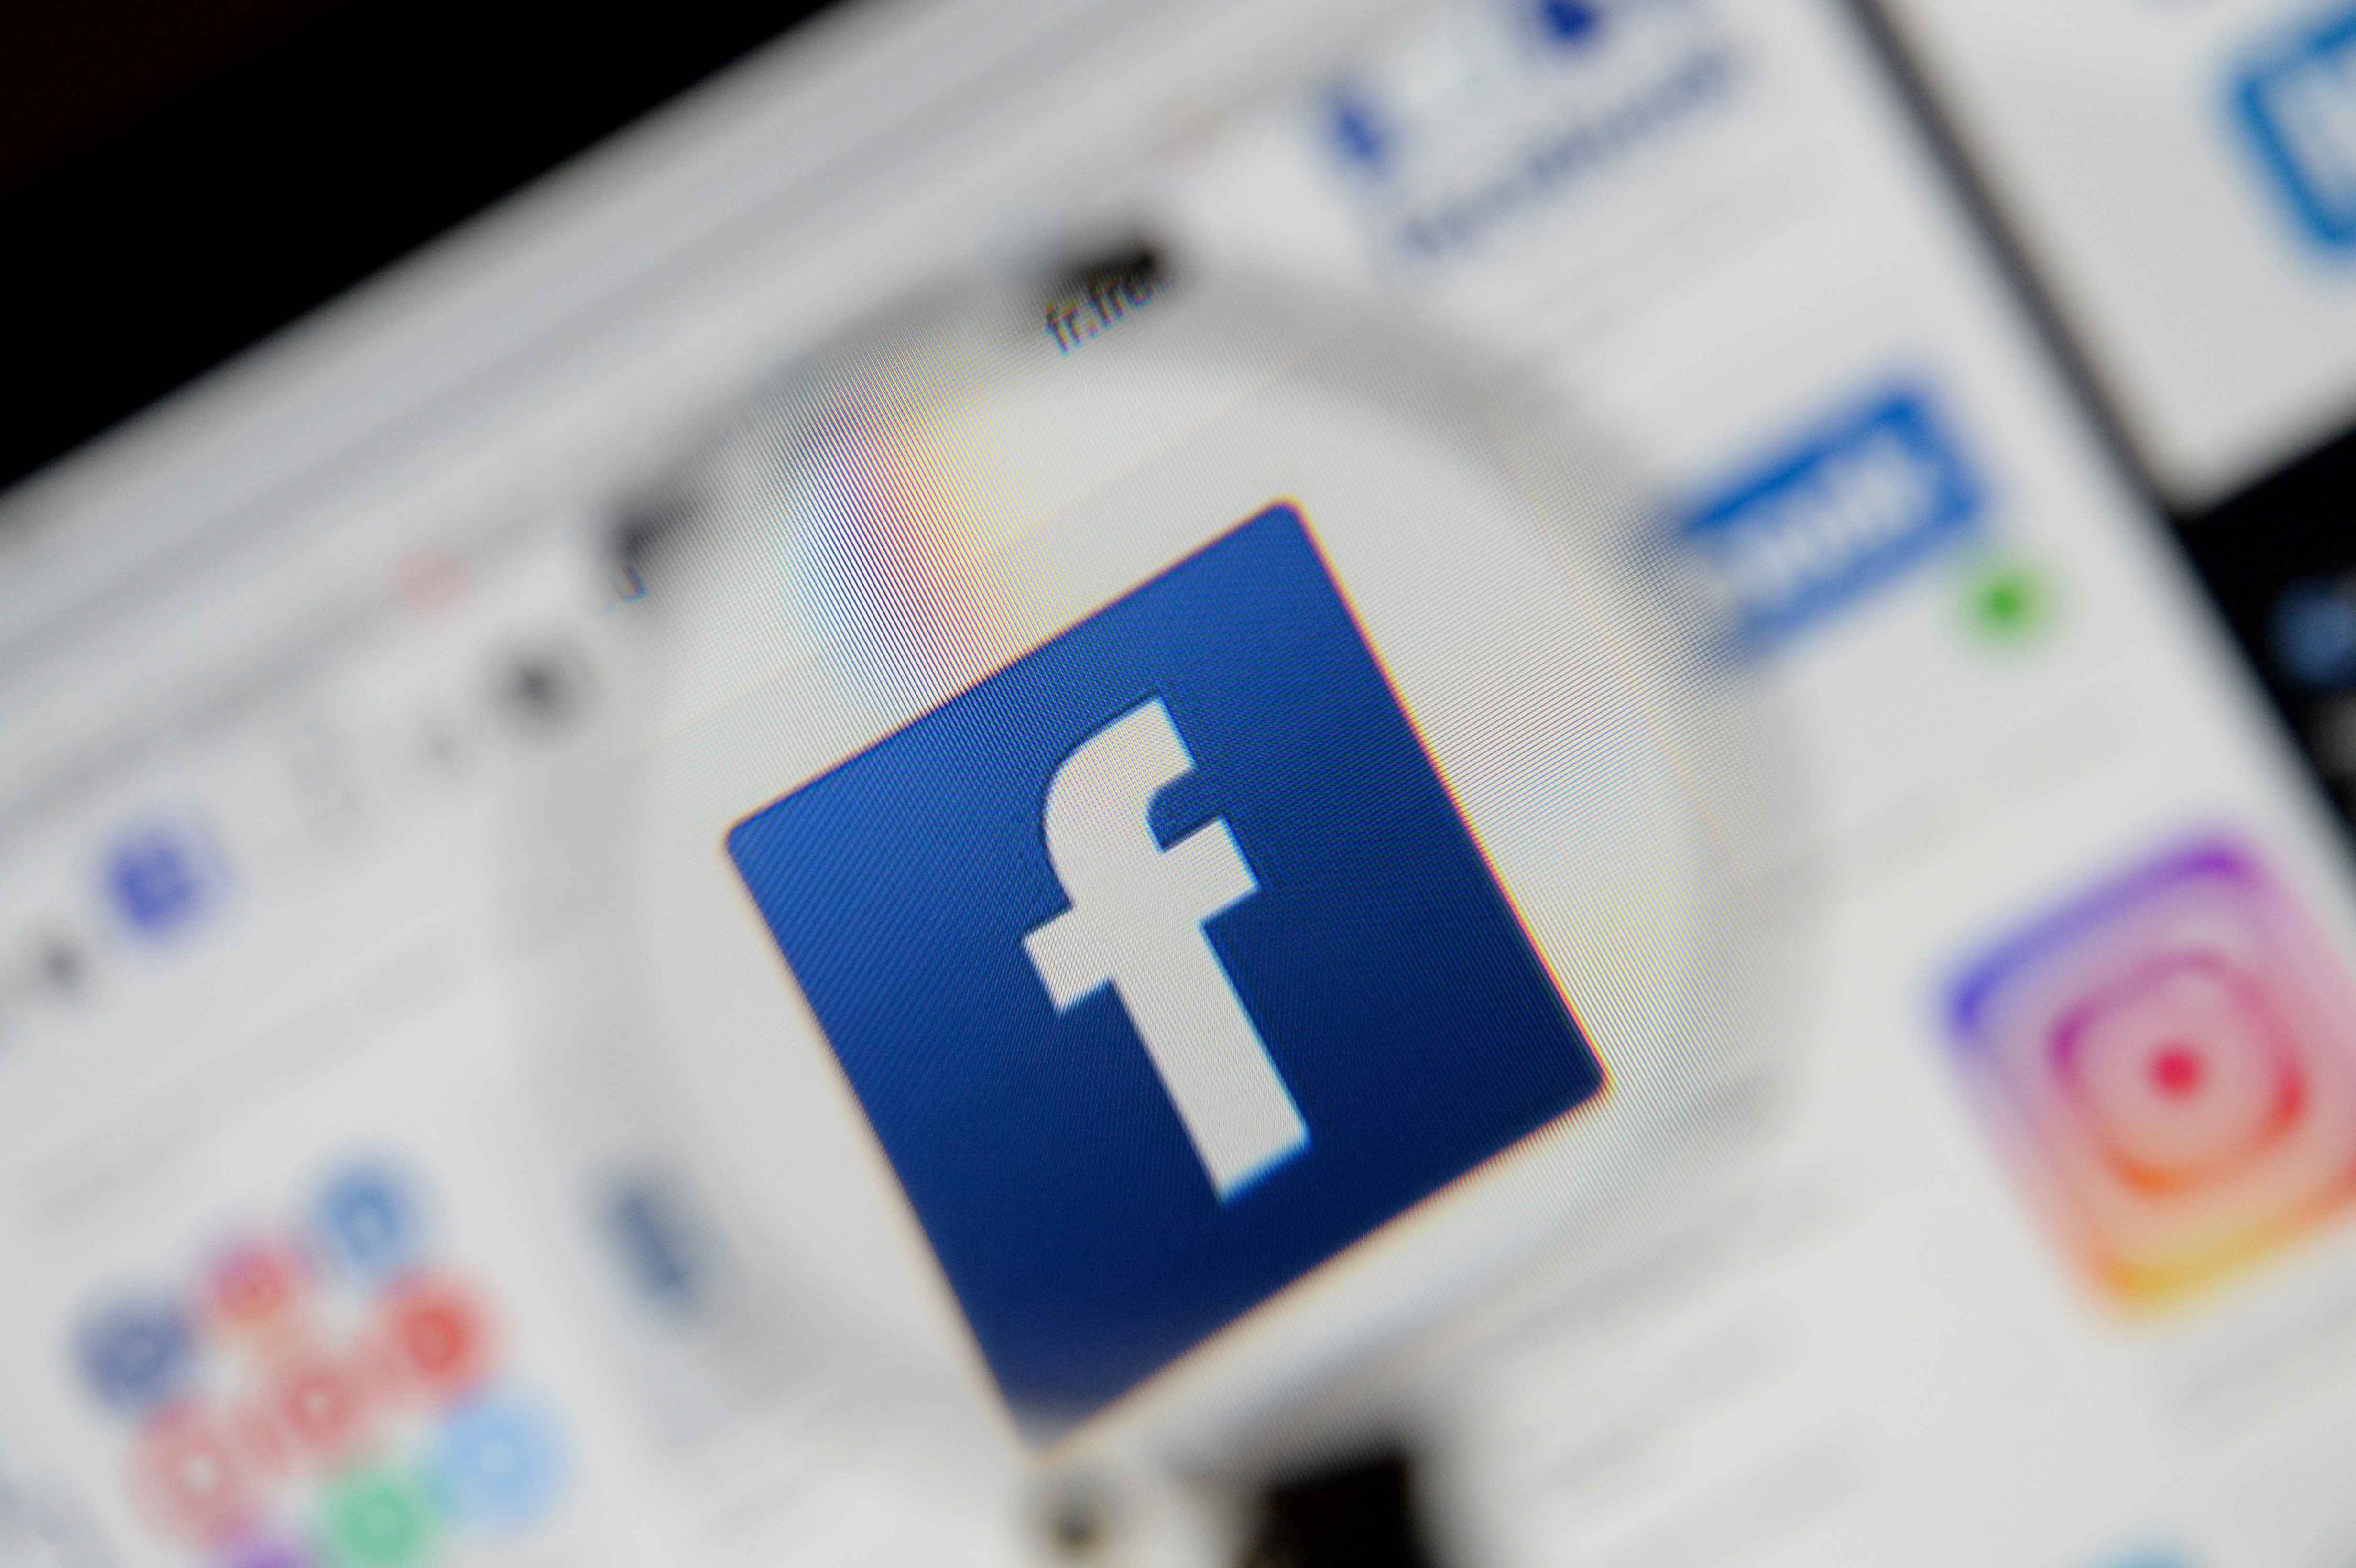 The Facebook logo is seen on a screen in this picture illustration taken December 2, 2019. REUTERS/Johanna Geron/Illustration/File Photo